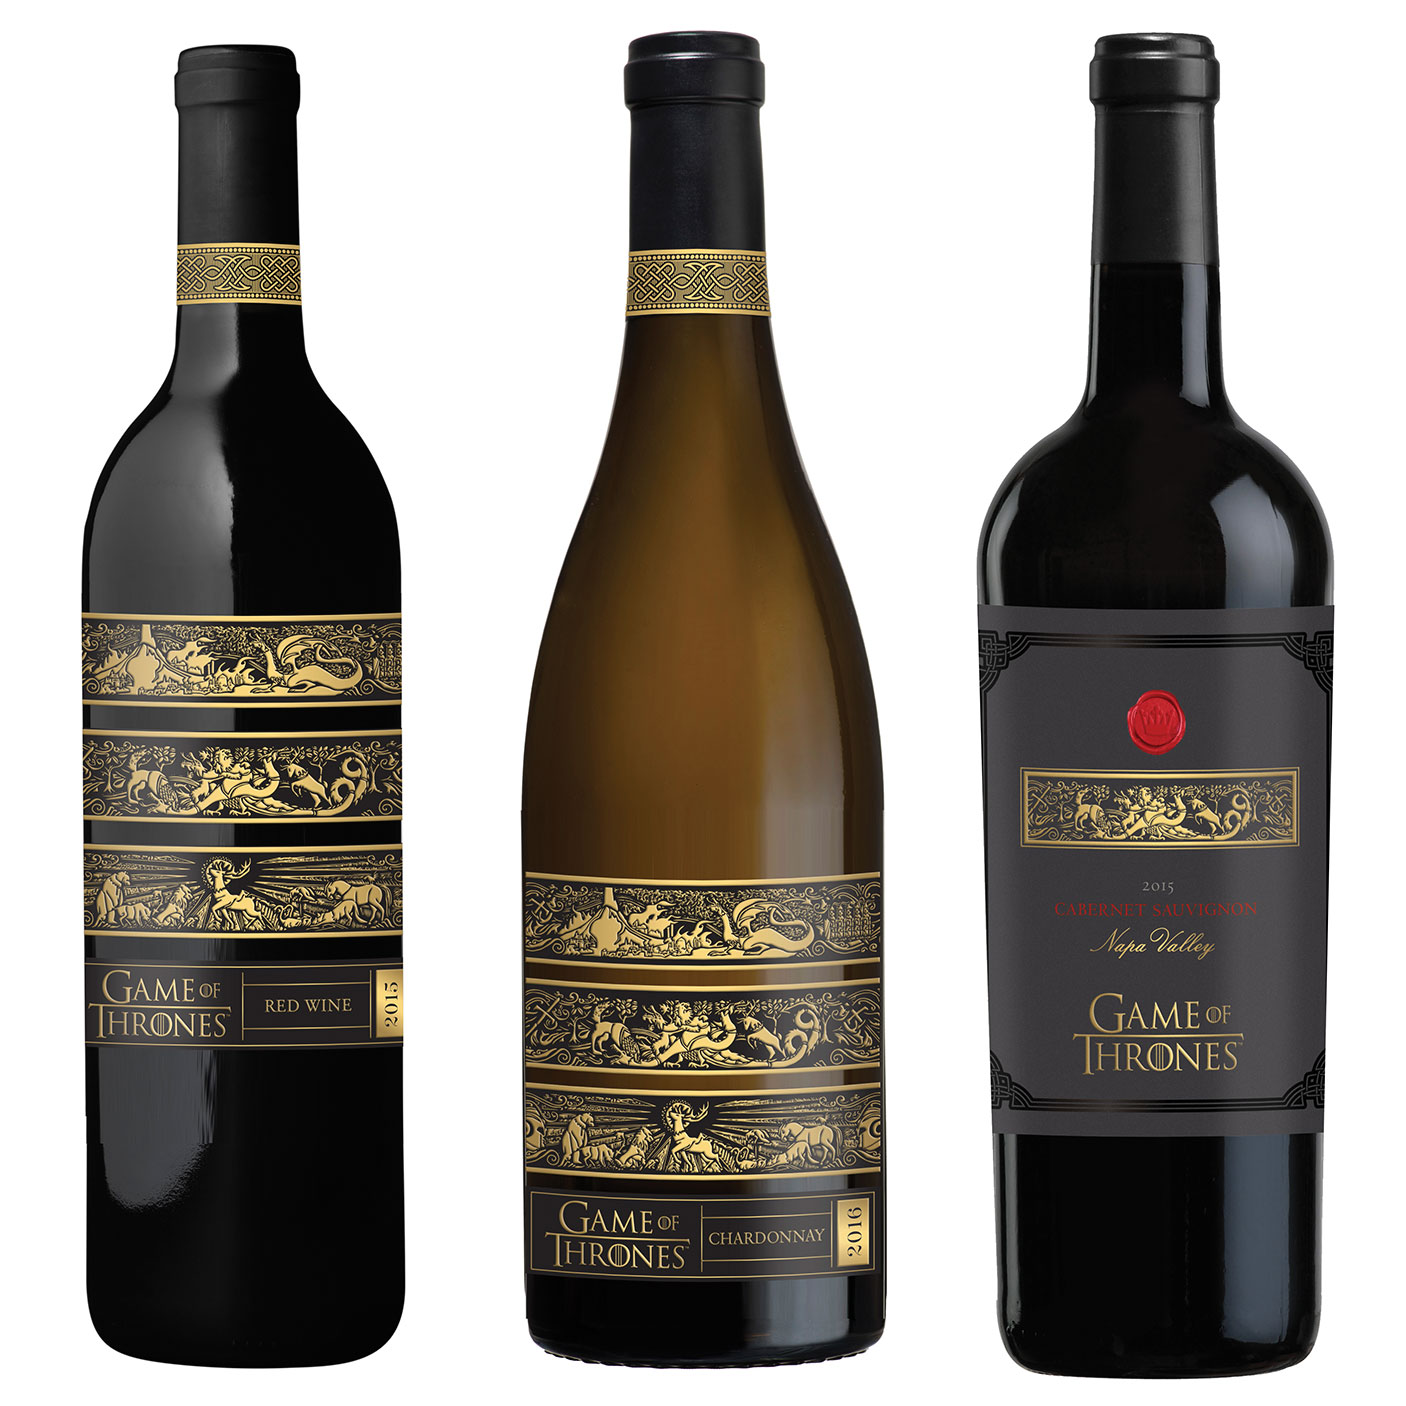 Game of Thrones Wines